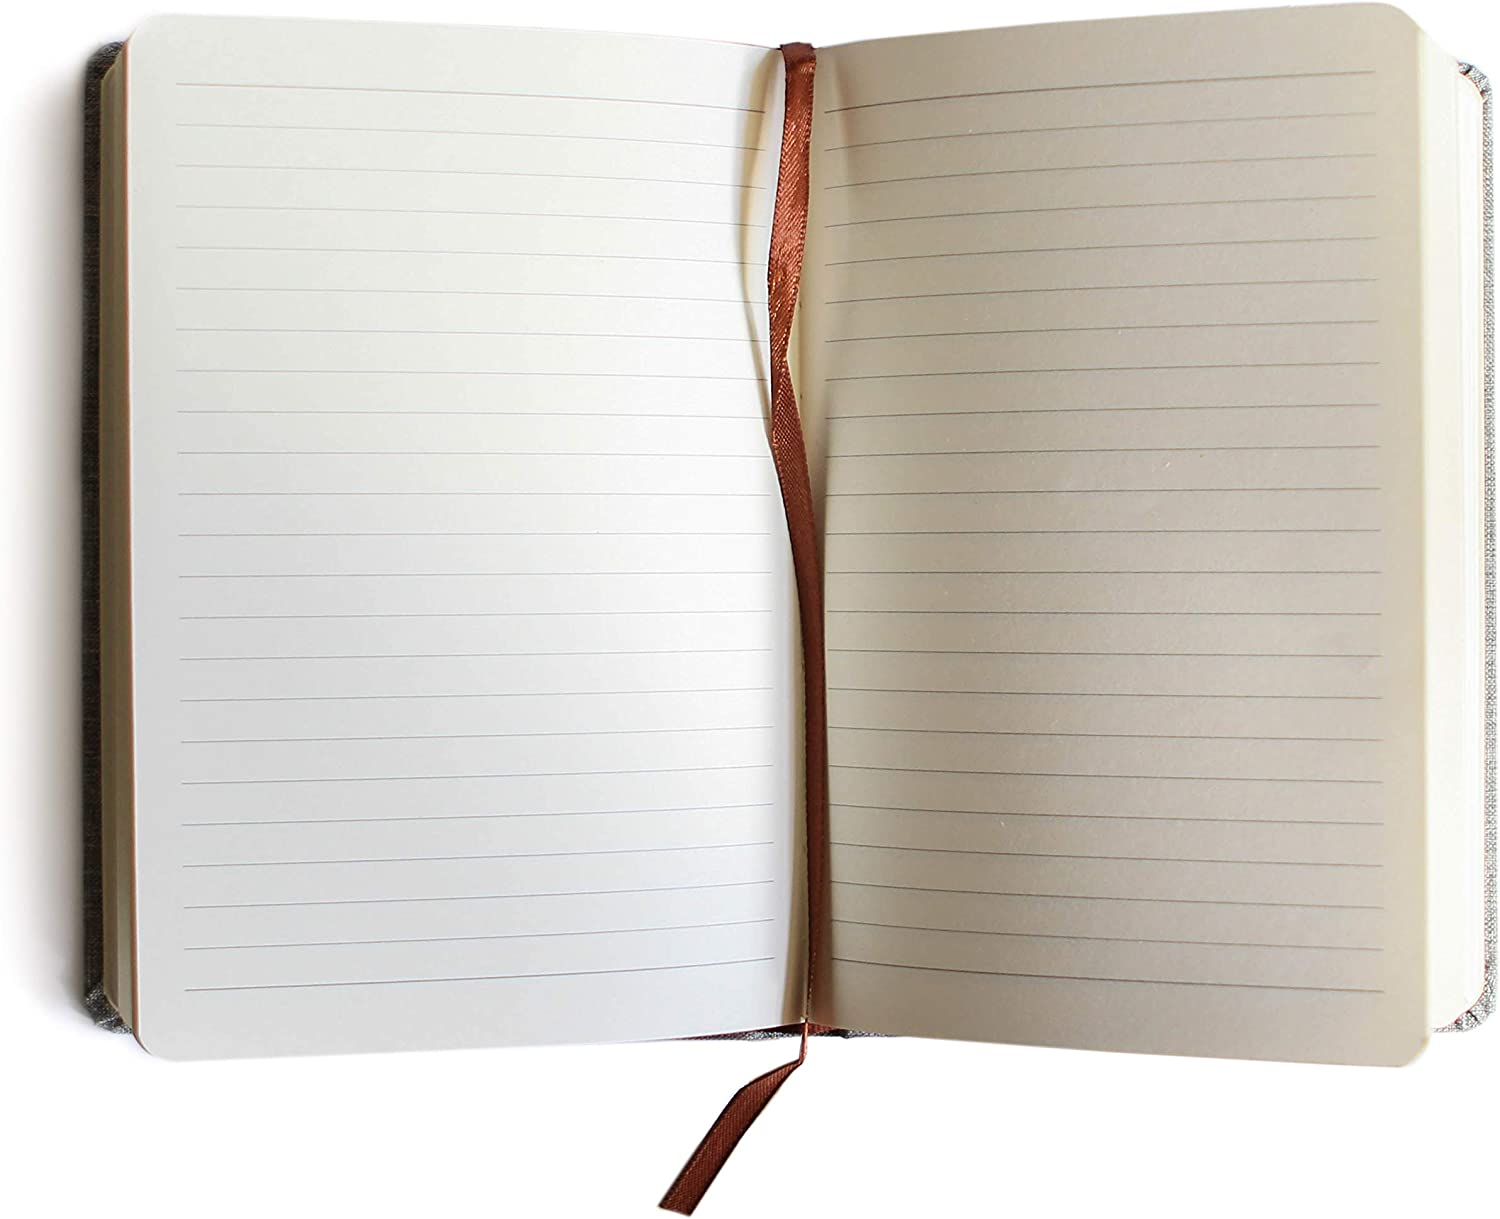 Fine Linen Covered Journal Ruled Notebook 8.4 x 5.7 in by Bucksaw